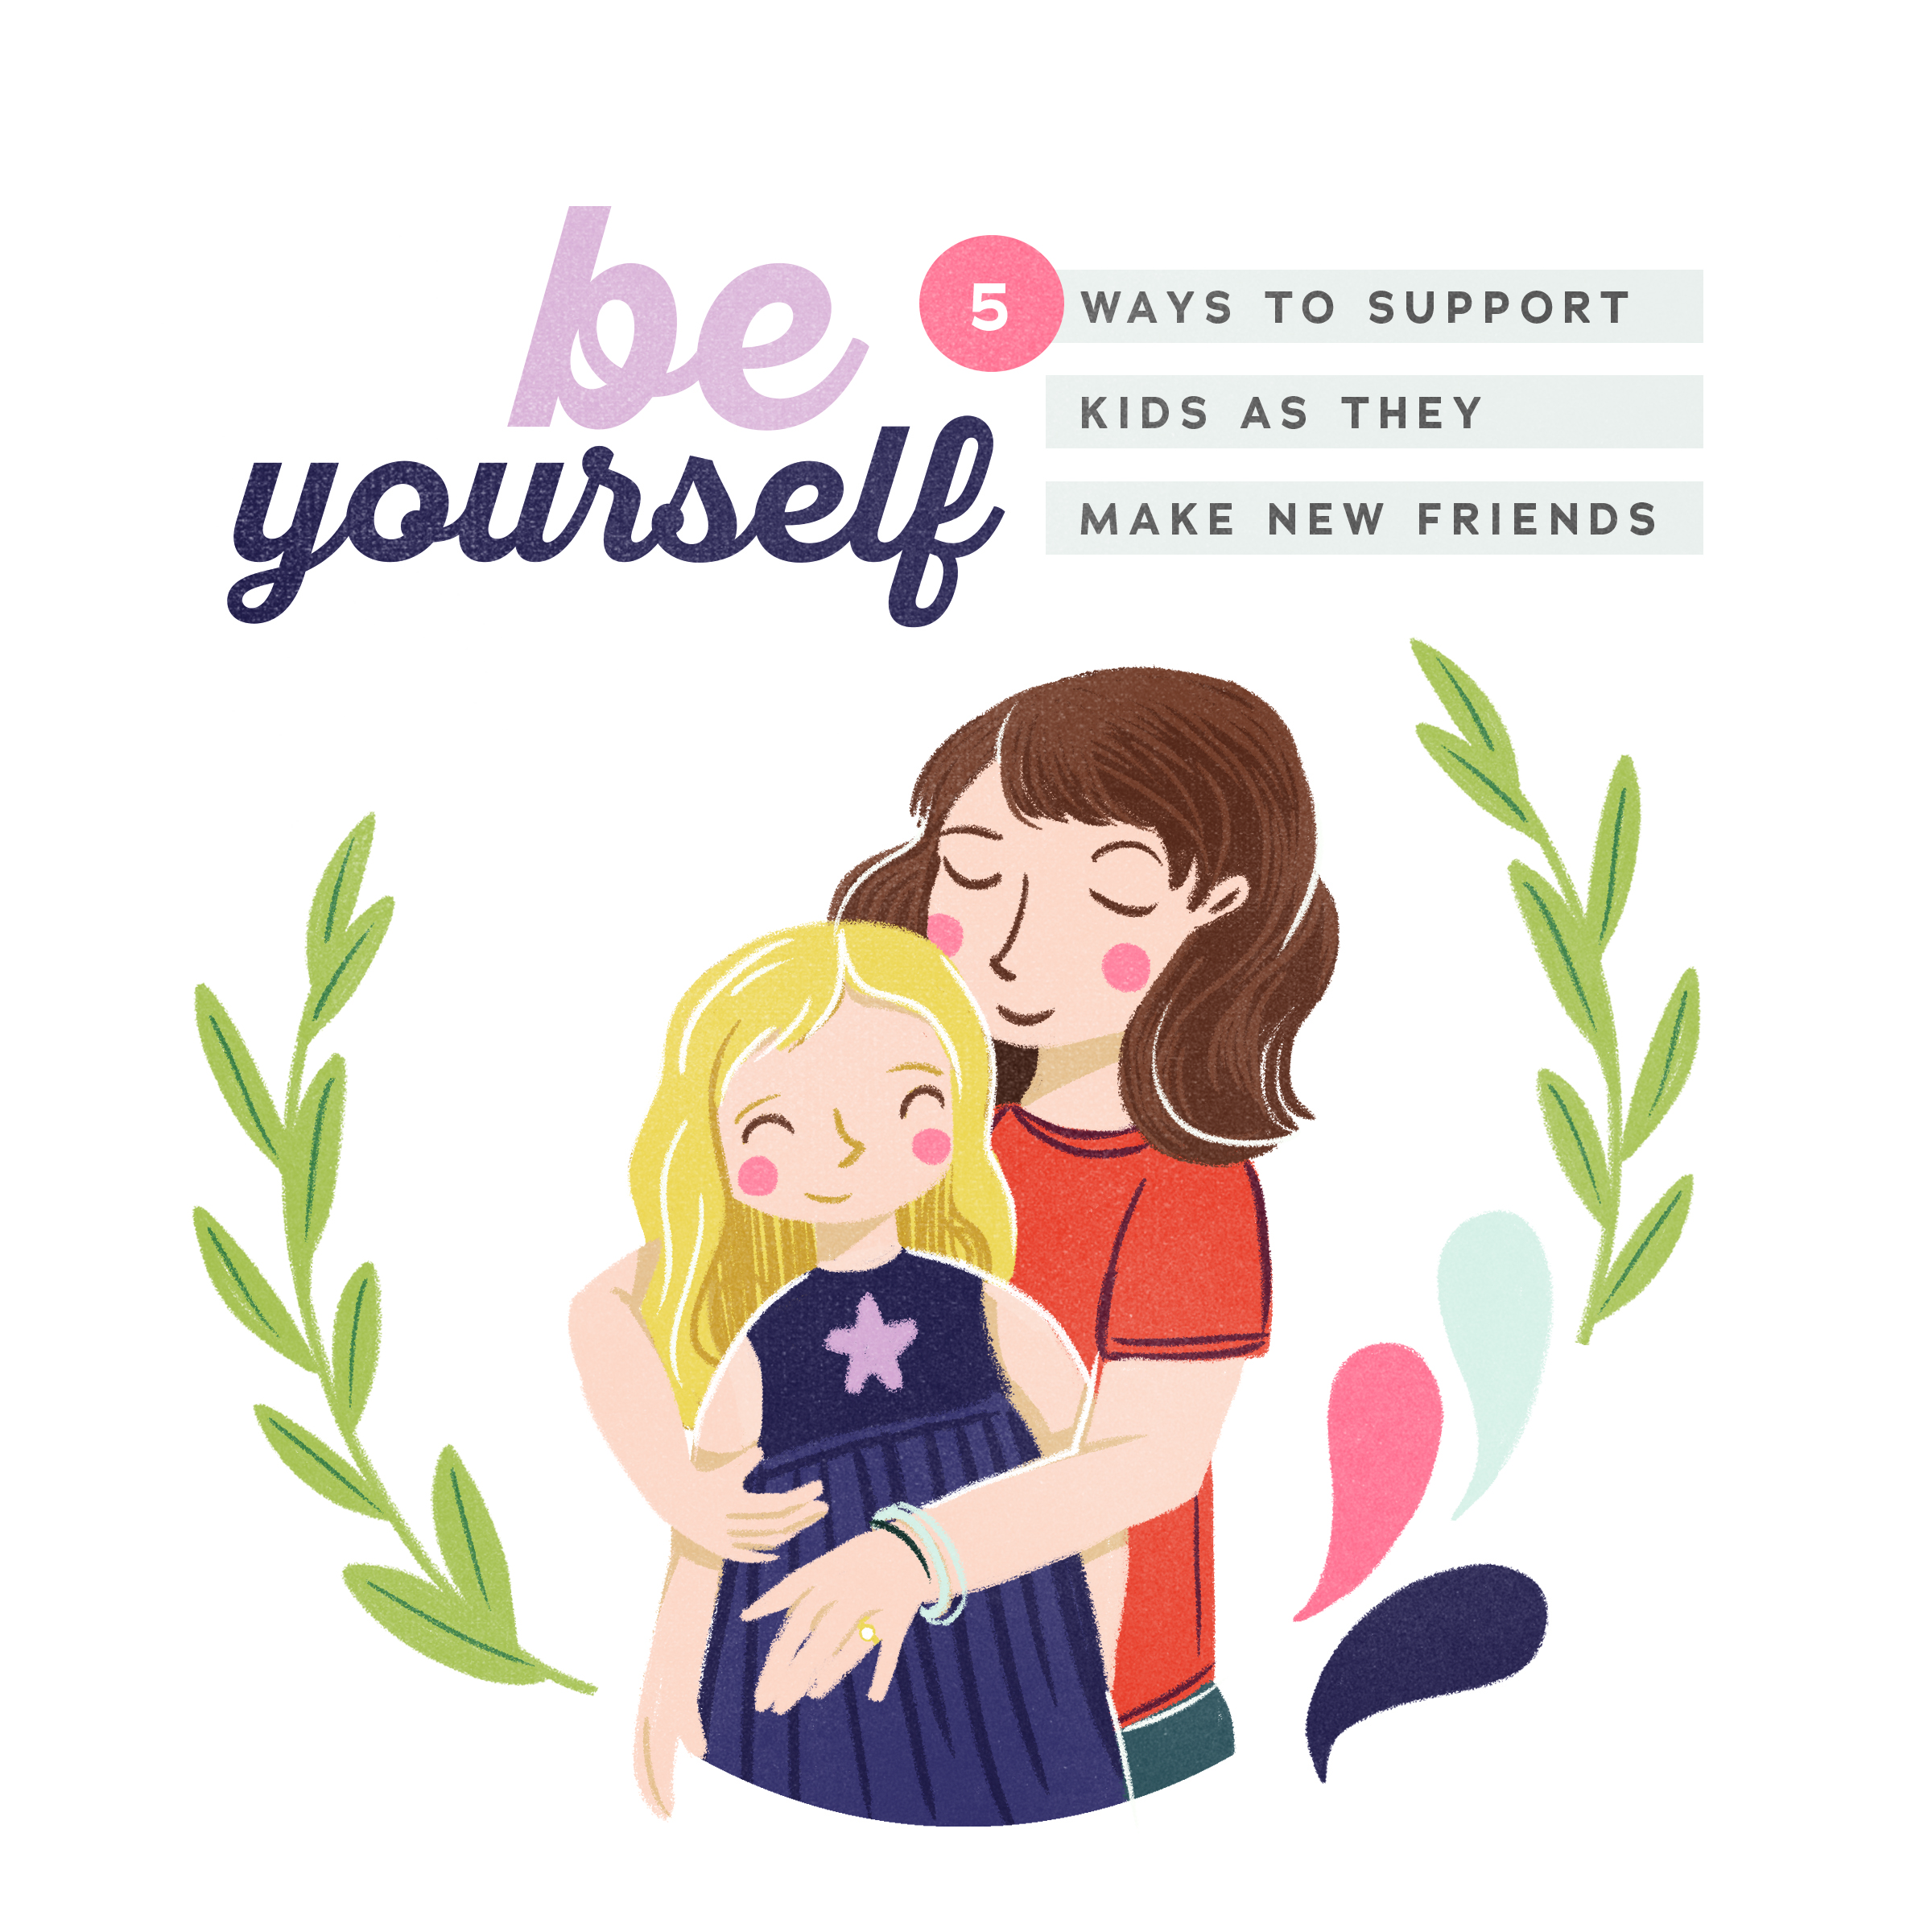 Be Yourself: 5 ways to support kids as they make new friends